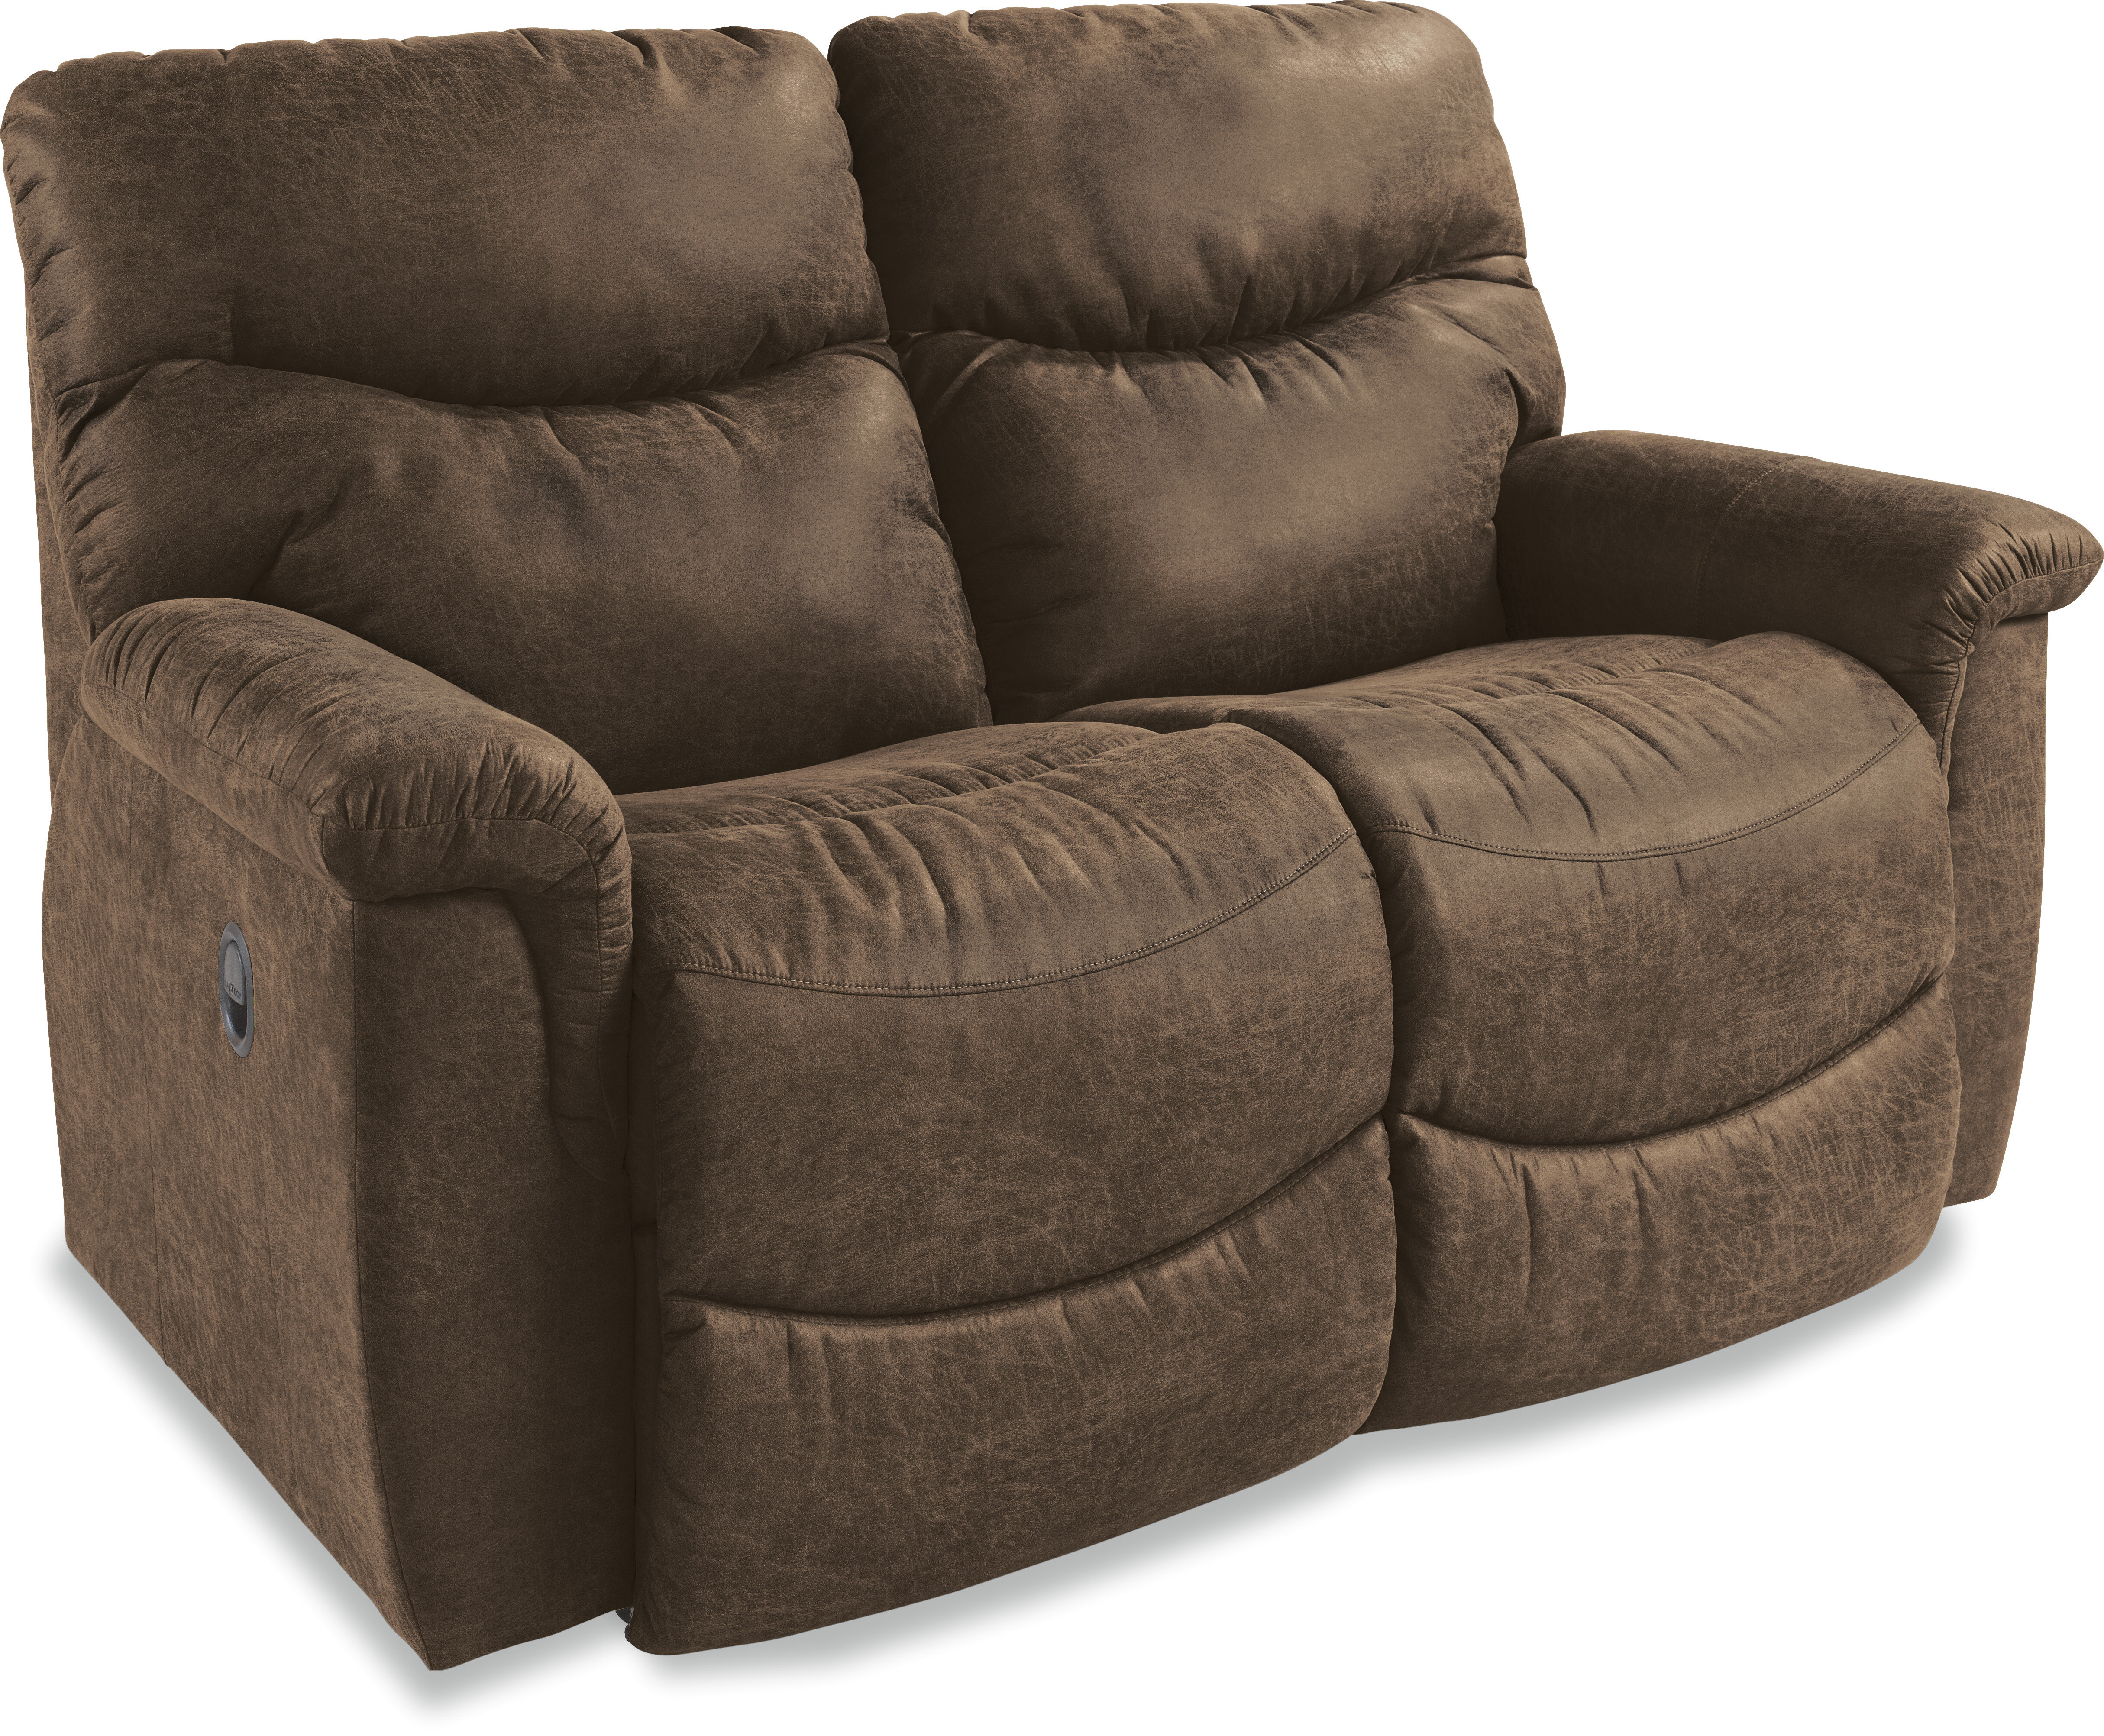 recliners best with lazy sofas leather recliner boy loveseat sofa within and